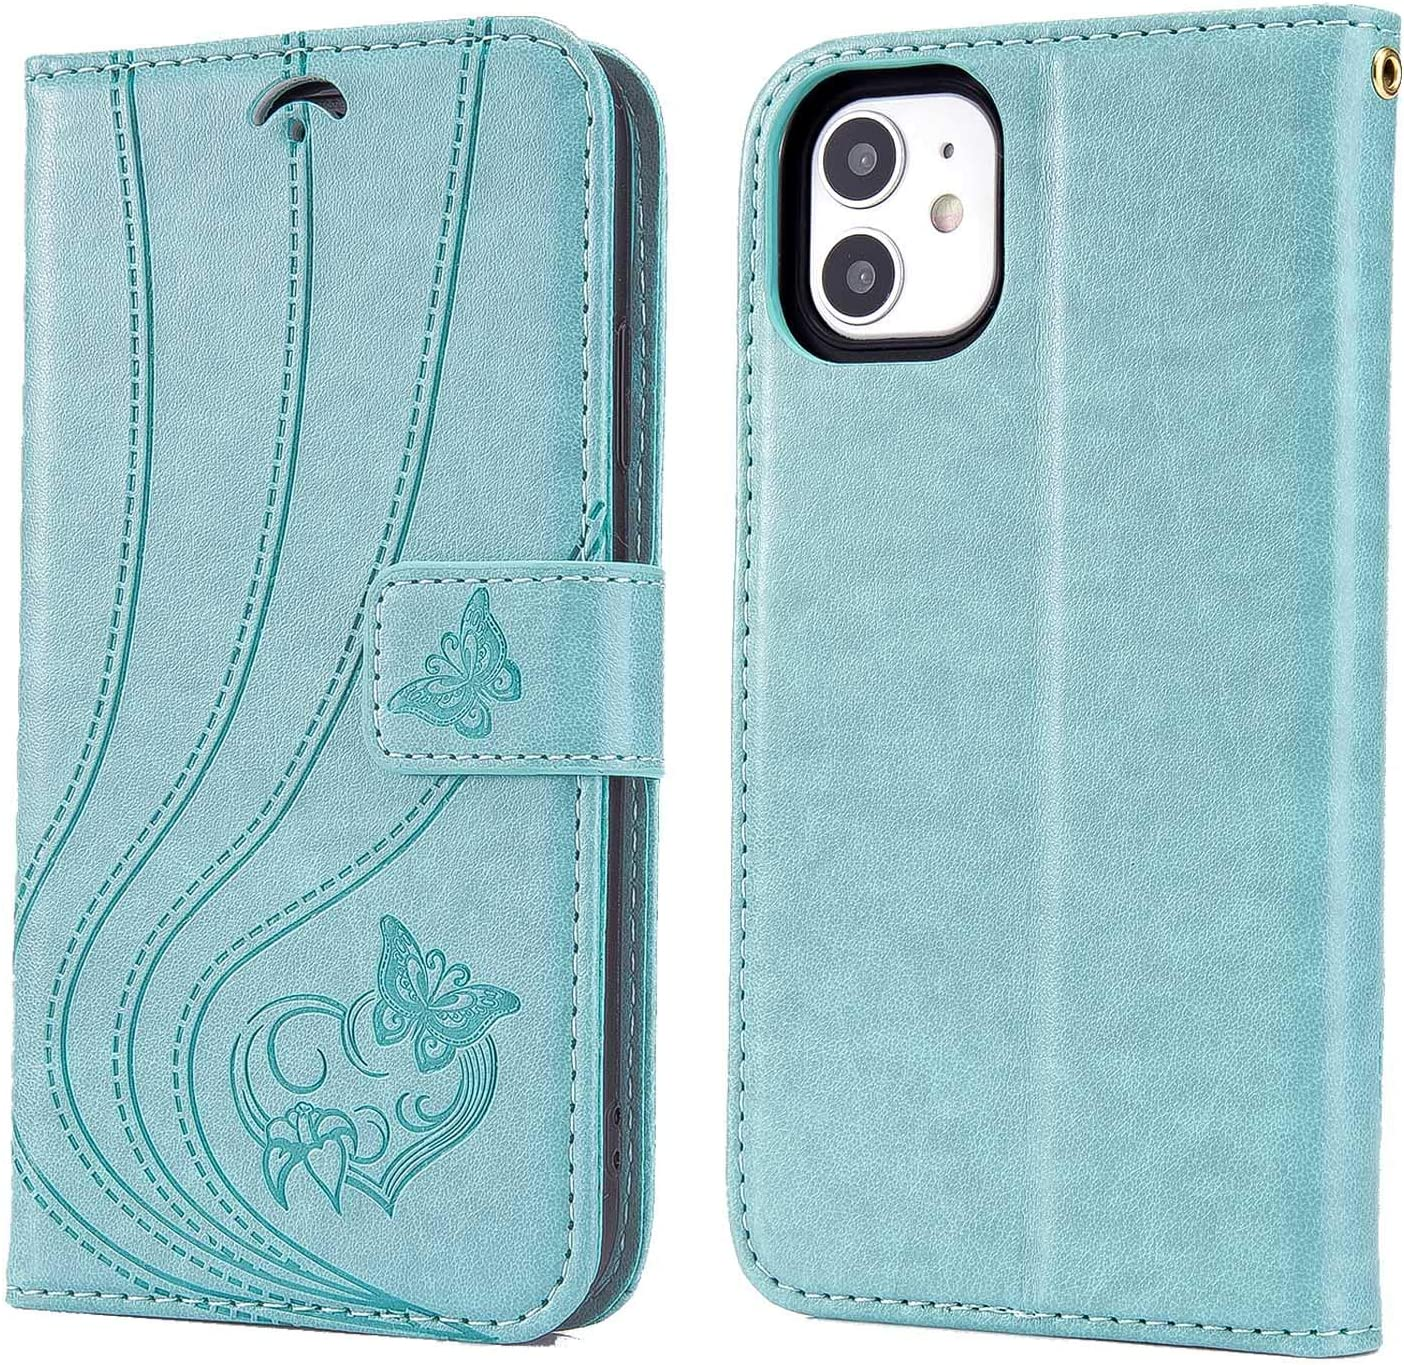 iPhone 11 Wallet Case,iPhone 11 Case with Card Solts Holder,Butterfly Floral Embossed Leather Flip Lanyard Wallet Case (Green)